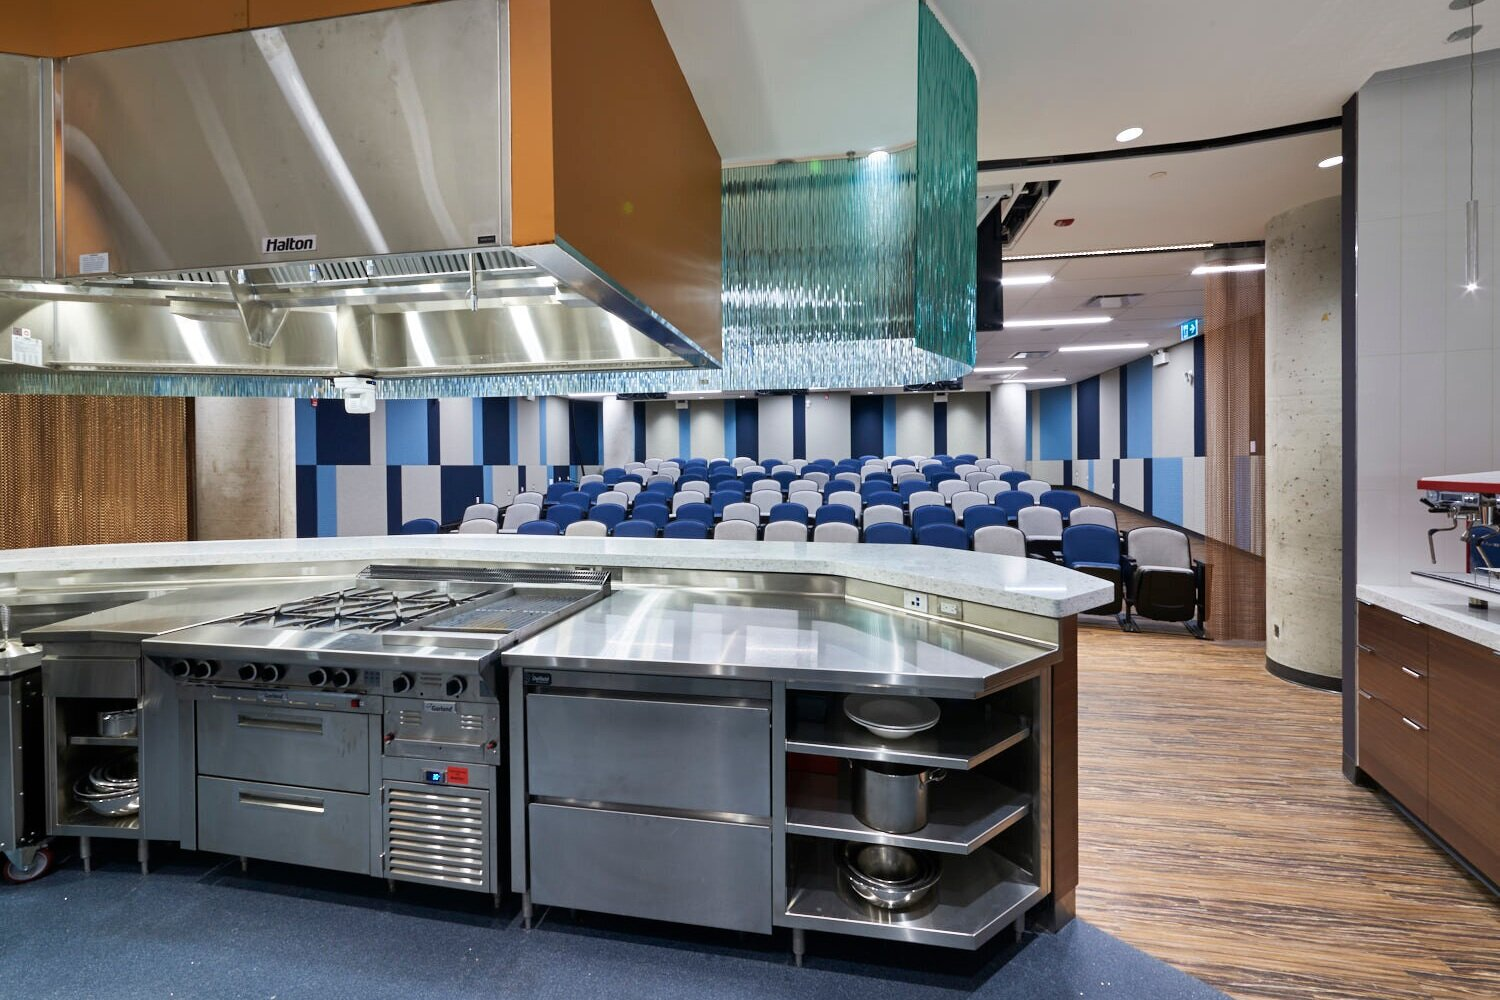 Alternate view of the kitchen in the Culinary Demonstration Theatre at the Centre for Hospitality & Culinary Arts at George Brown College